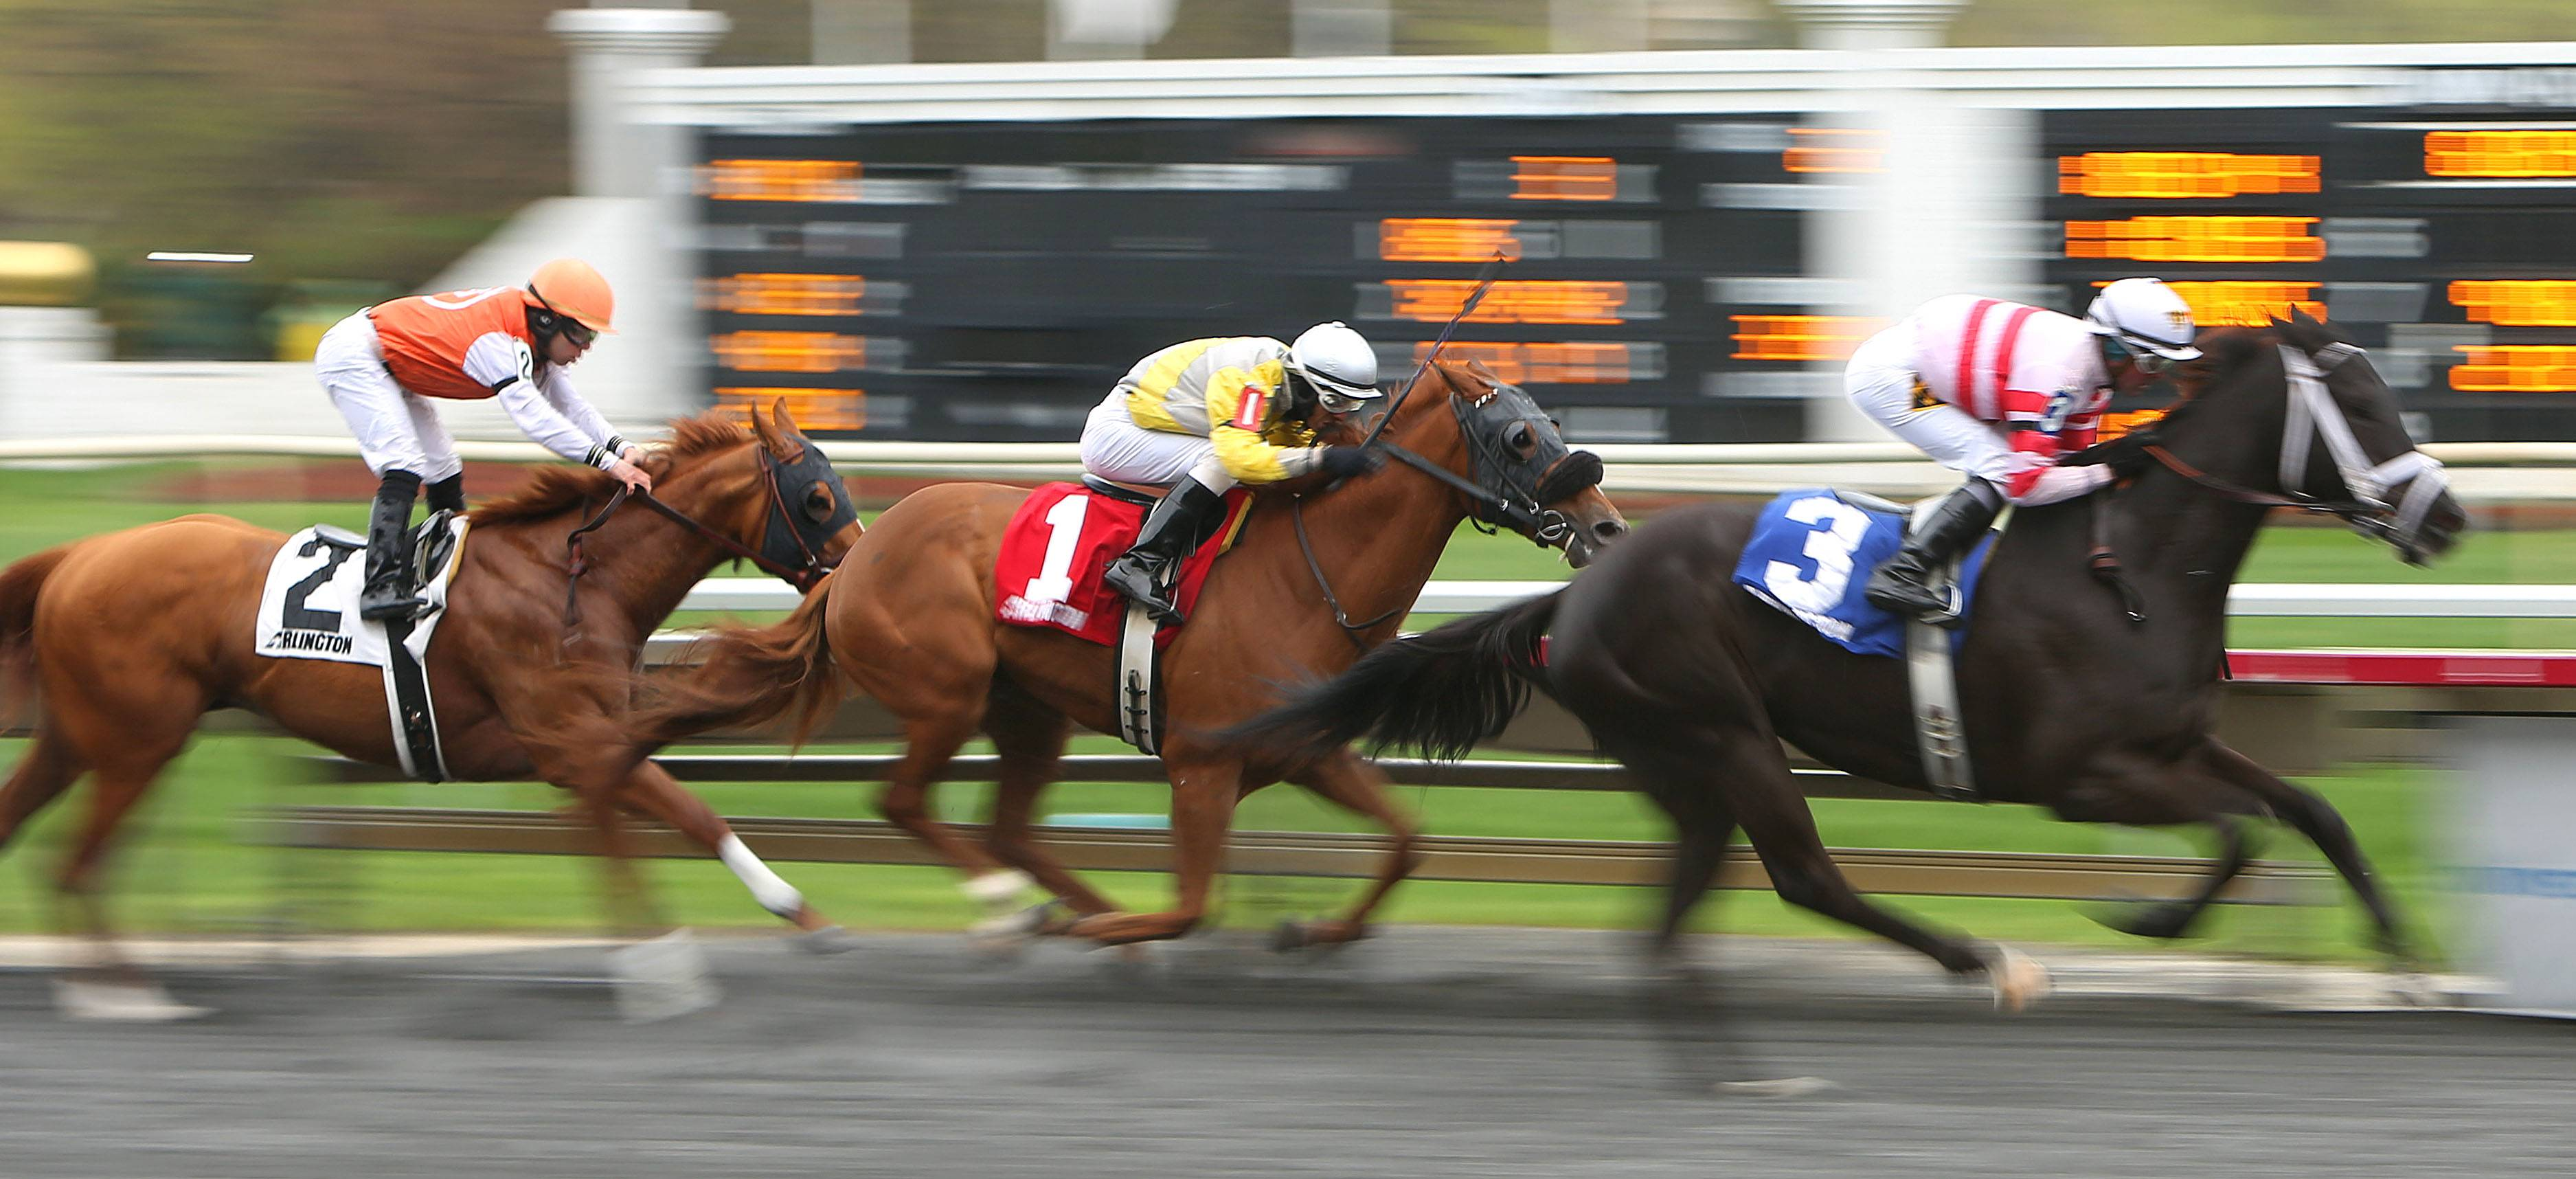 Horses race to the finish during opening day at Arlington International Racecourse.